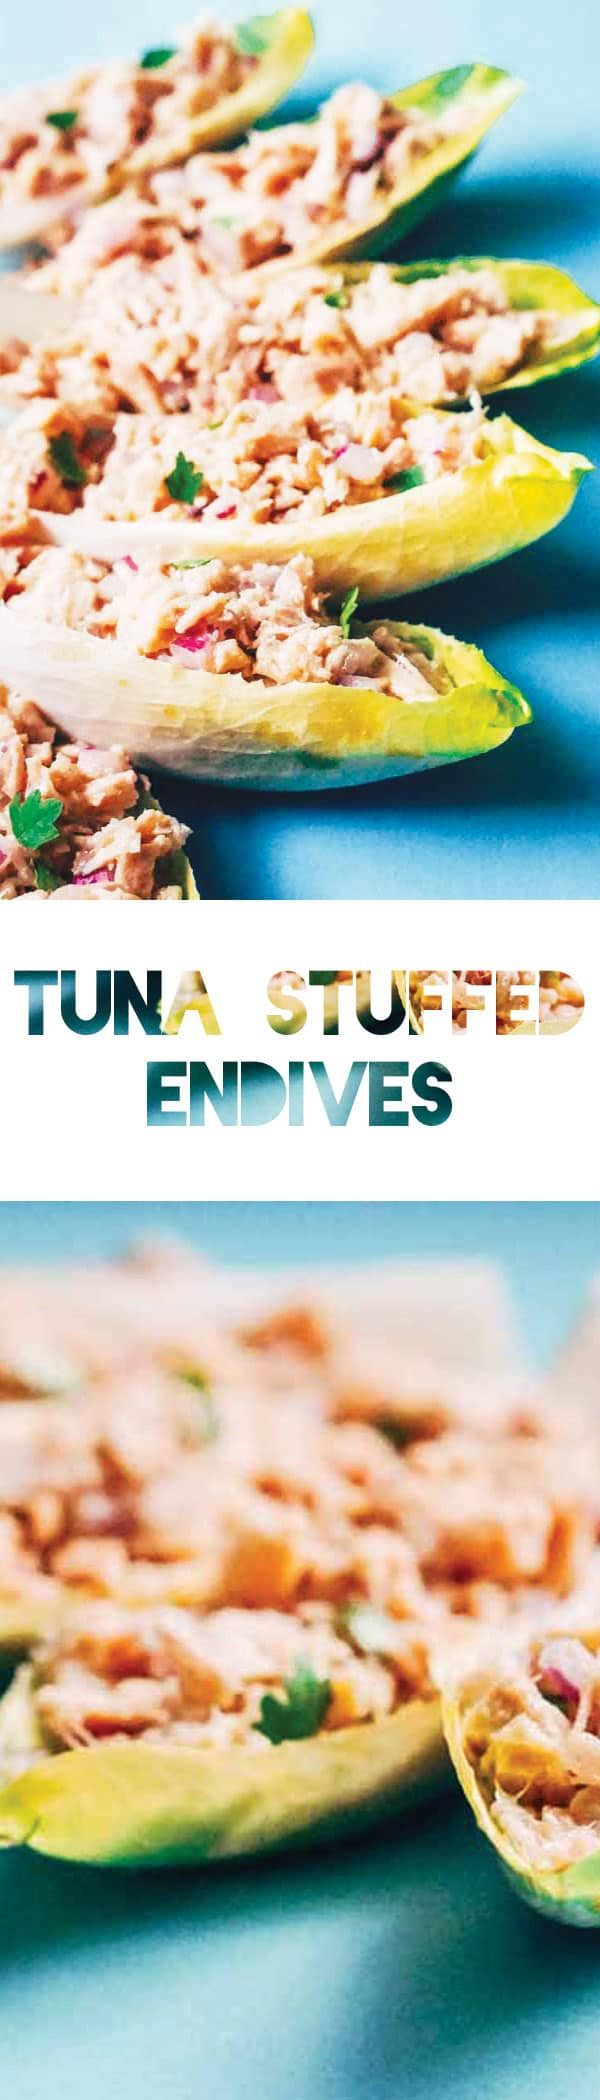 Keto Tuna Stuffed Endives with Avocado Oil Vinaigrette Recipe